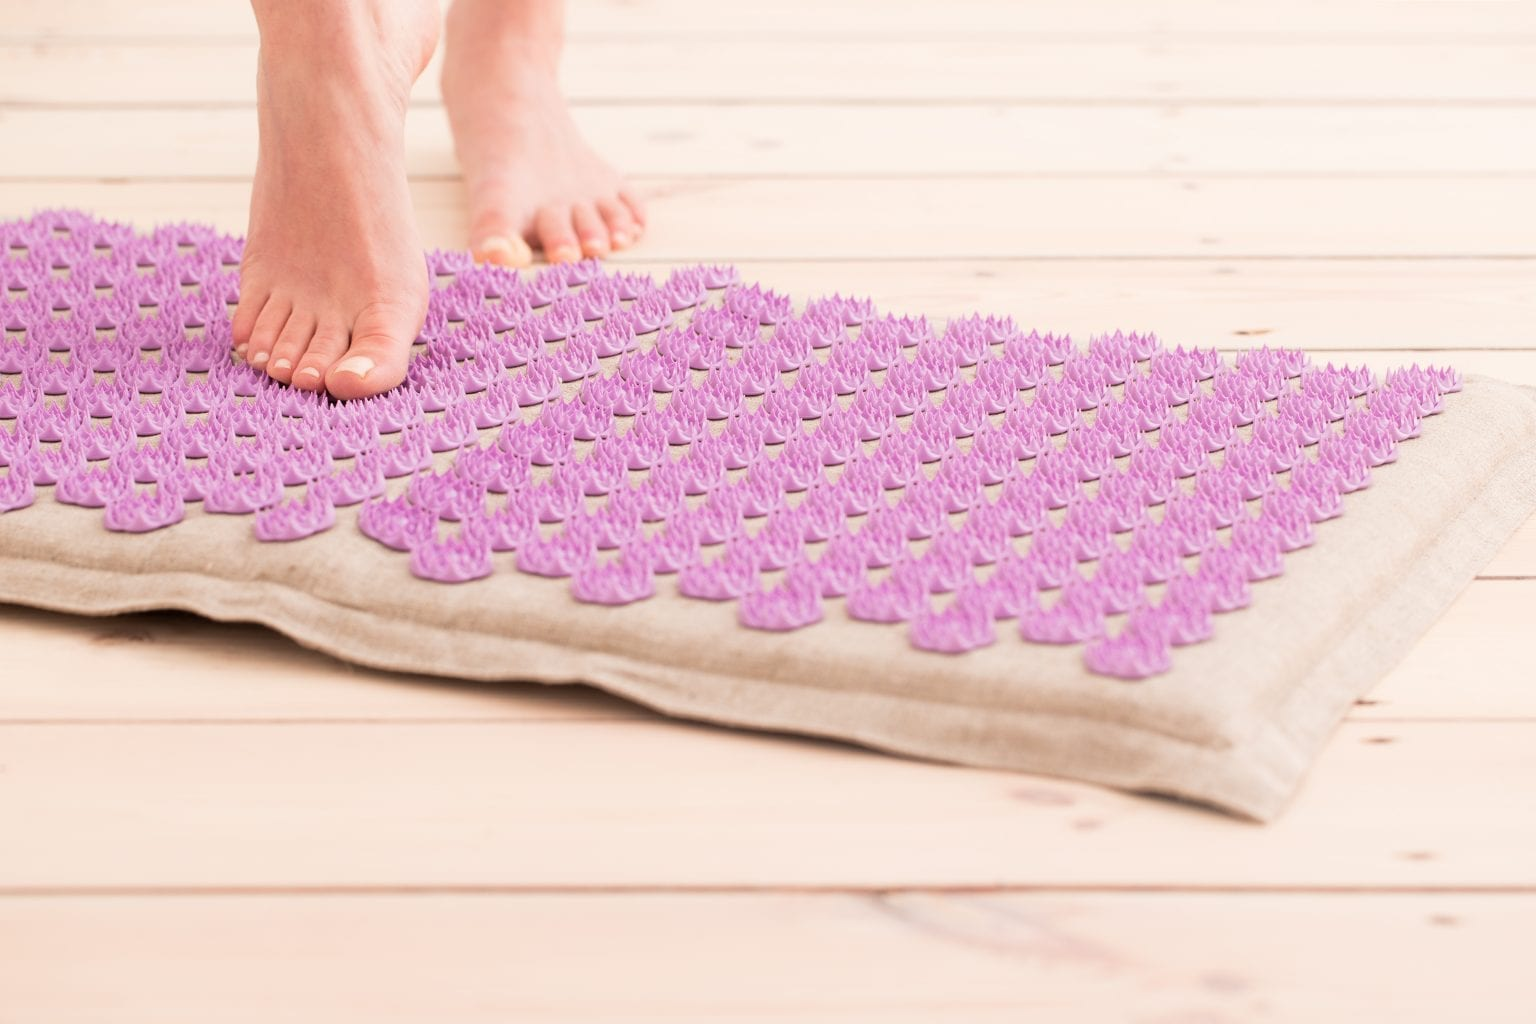 Best Acupressure Mats in UK 2021 - Reviews and Buying Guide